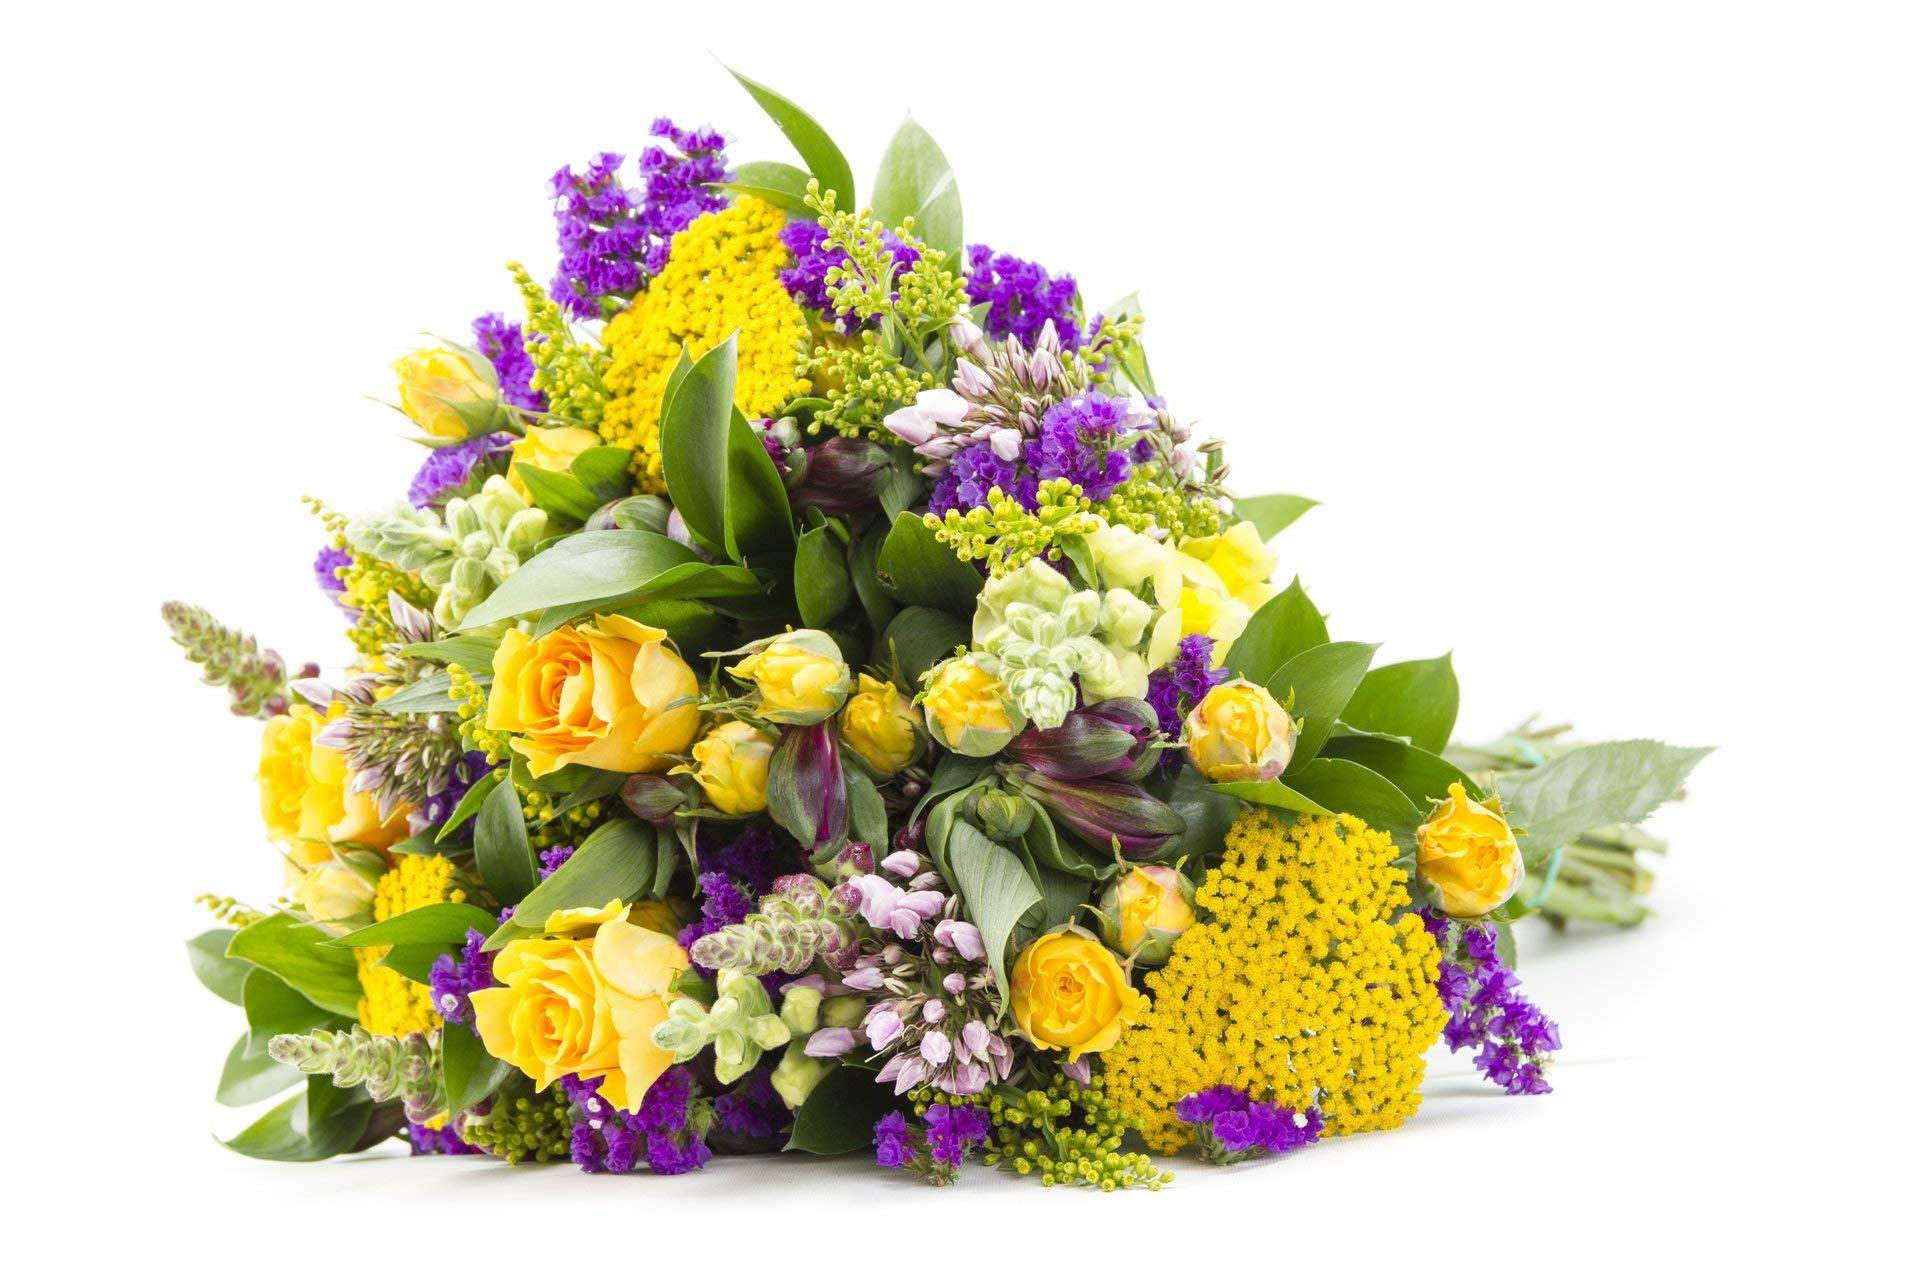 Chichi Party Purple and Yellow Flowers with Roses, Snapdragons, and More Sustainably Grown and Harvested, No Vase Included by BloomsyBox (Image #2)